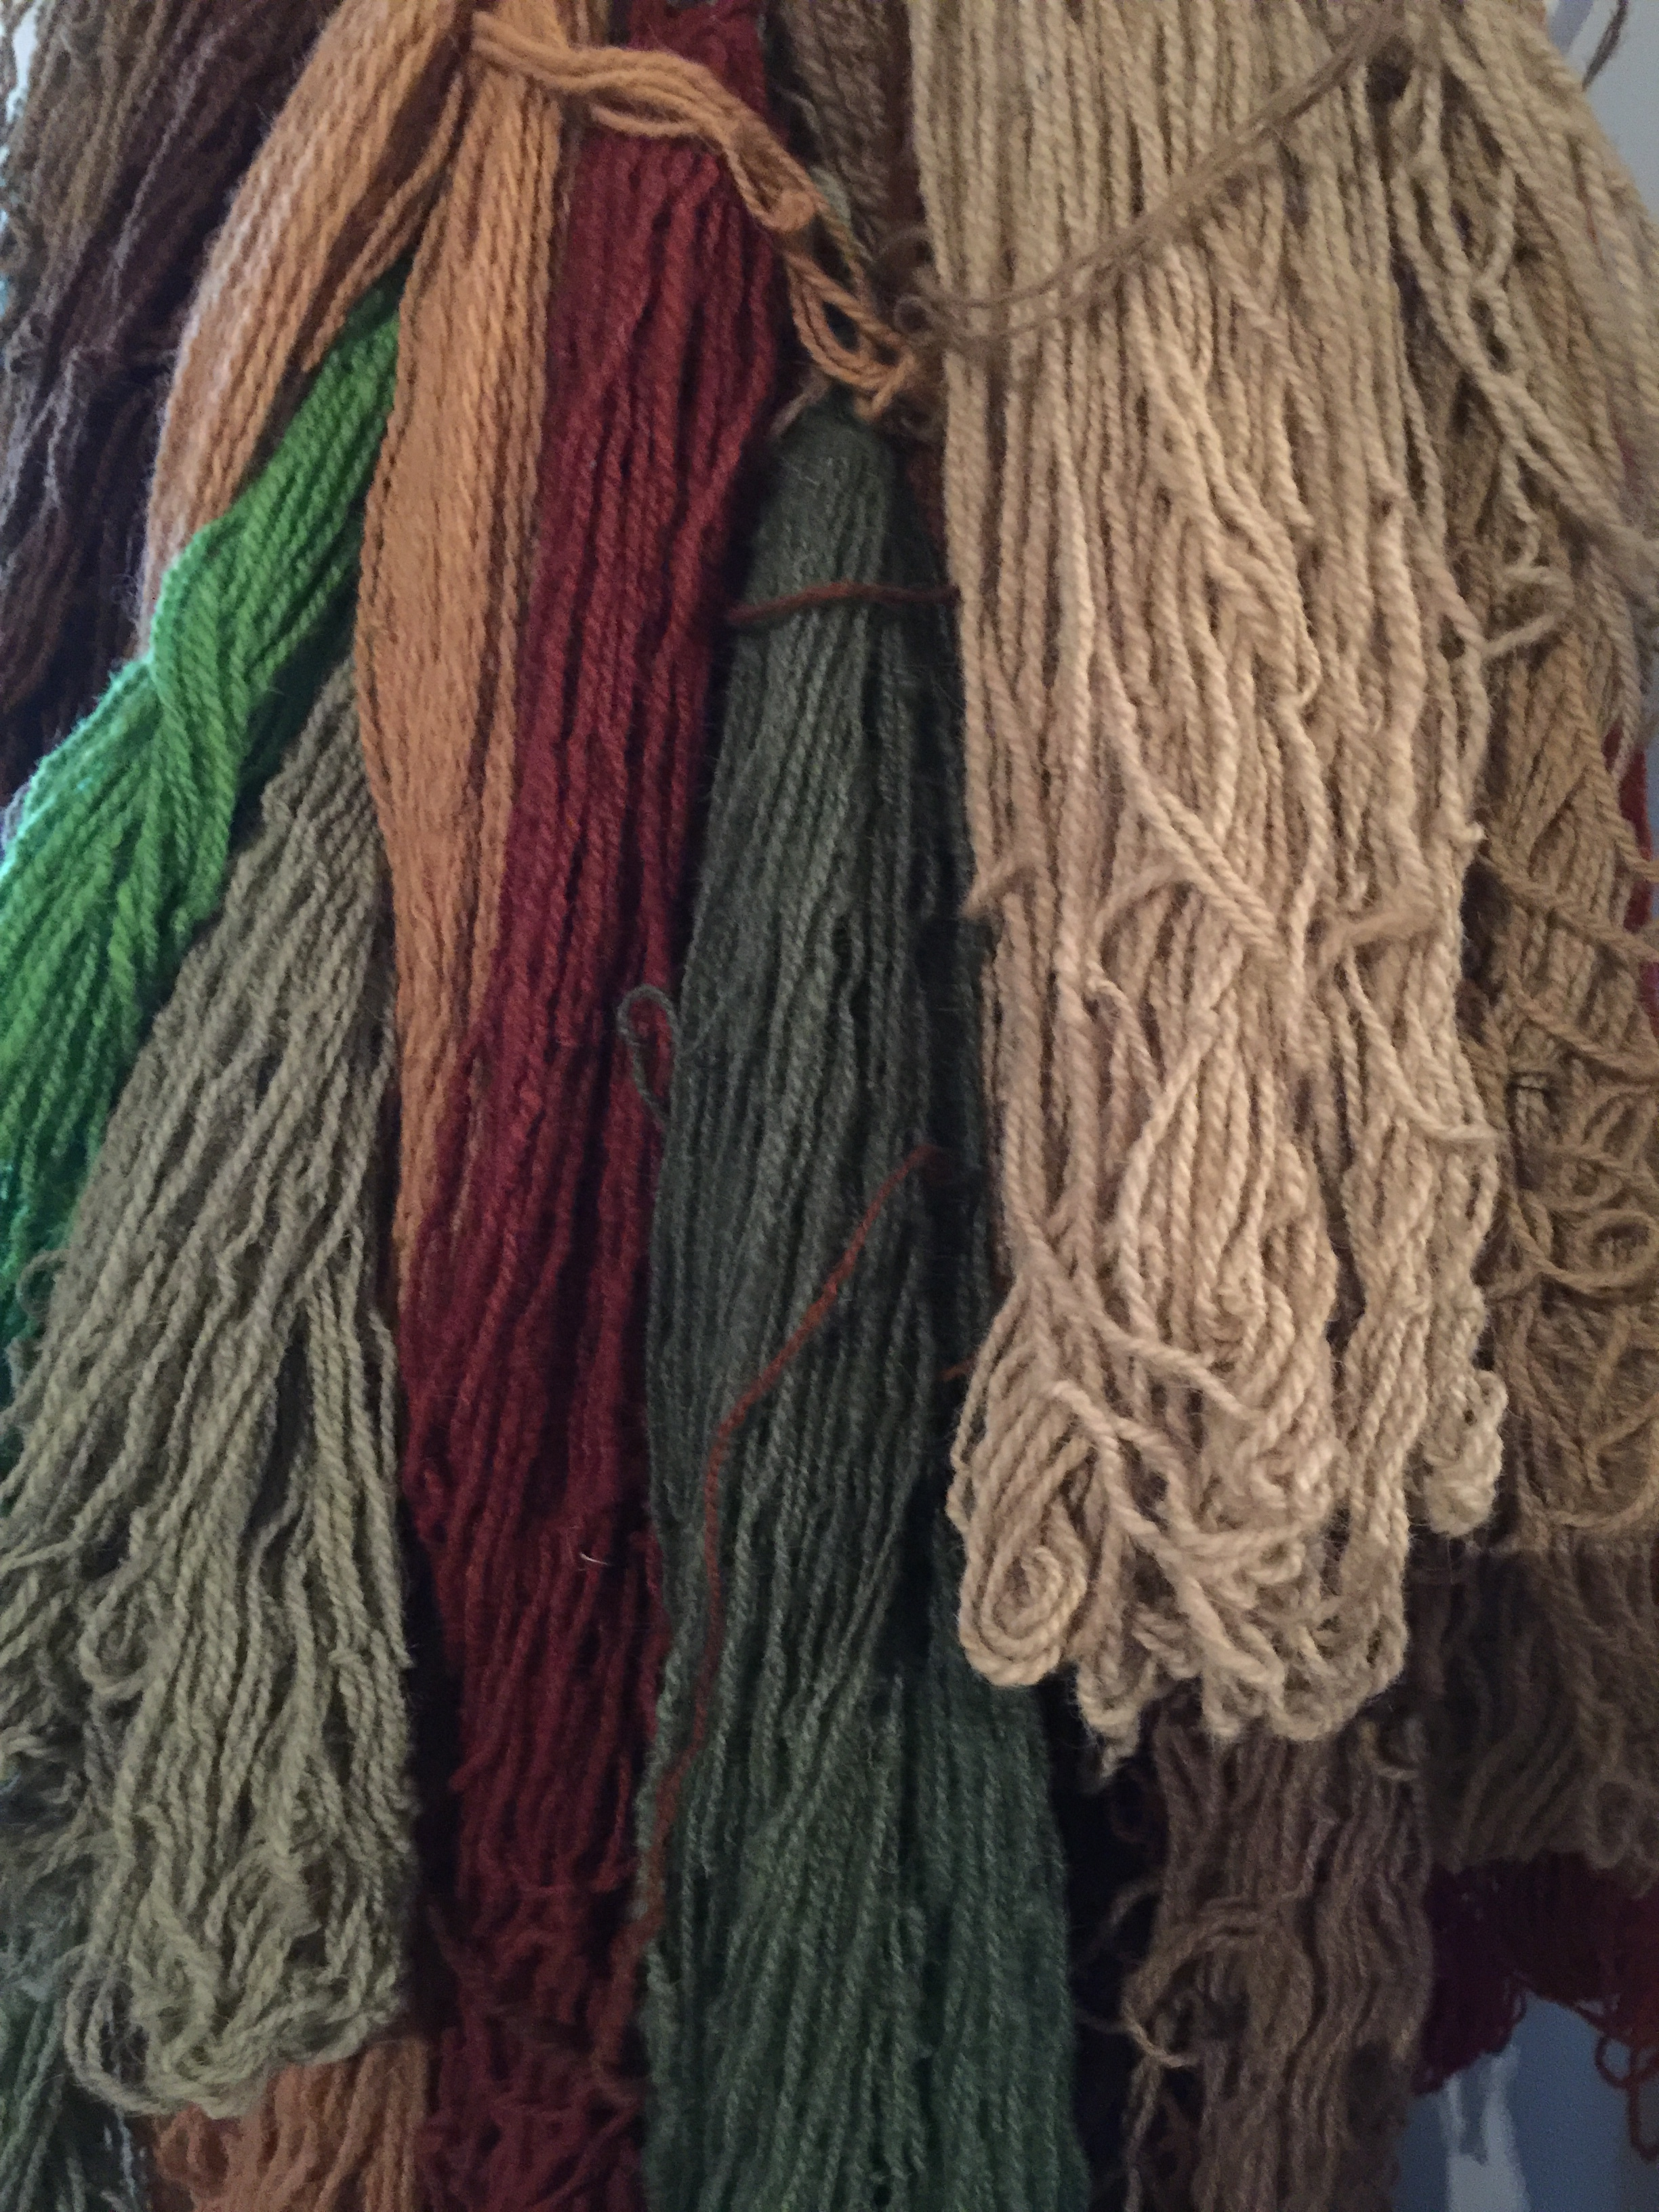 A sampling of Lila's dyes